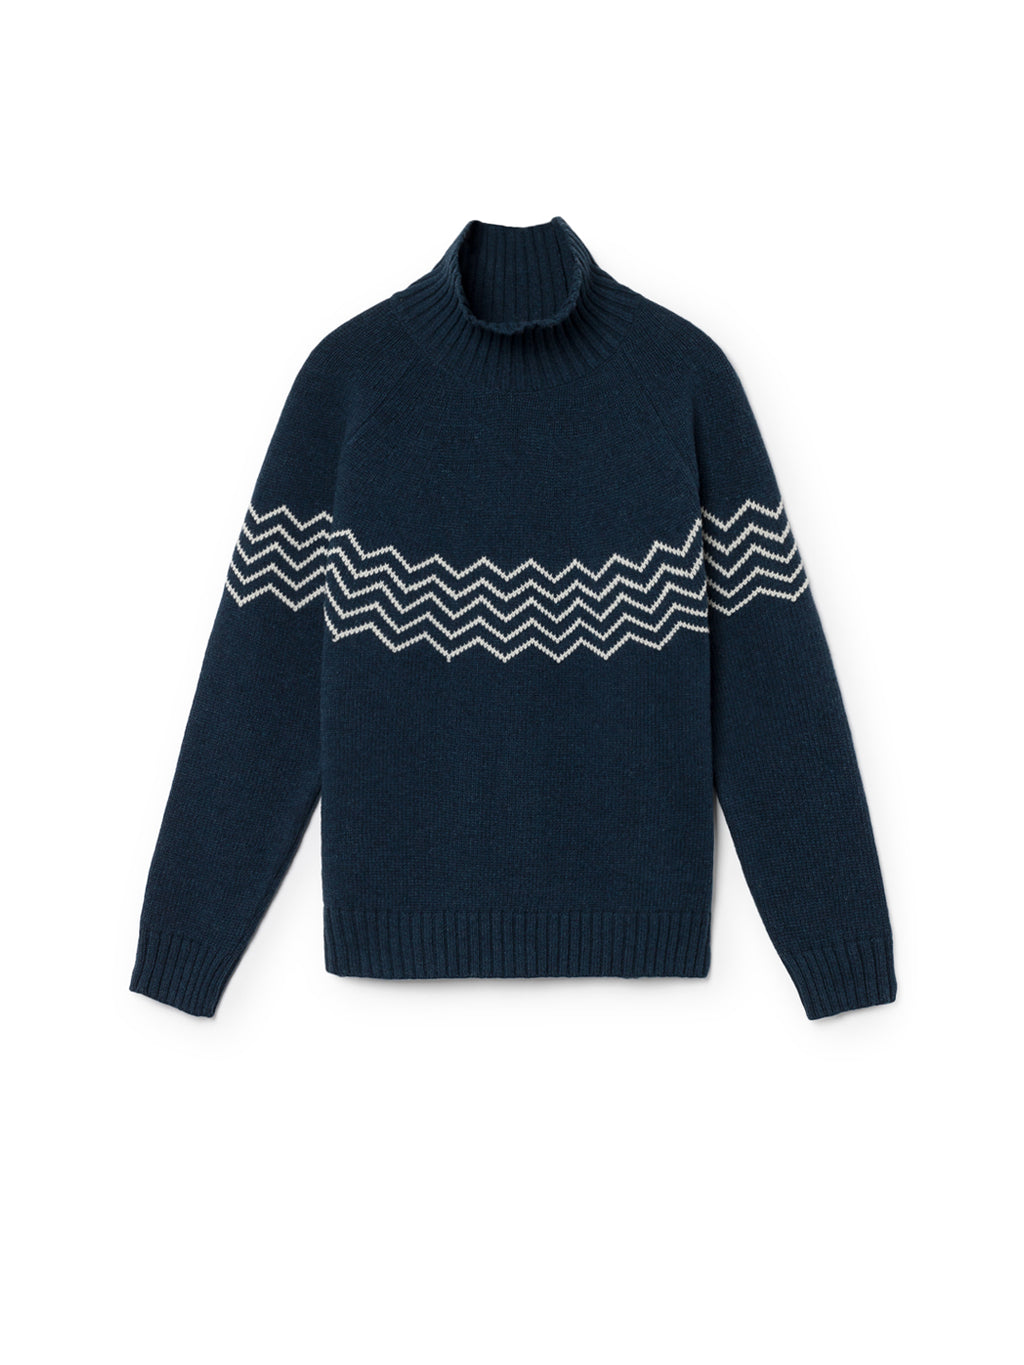 TWOTHIRDS Womens Knit: Ouvea - Navy front